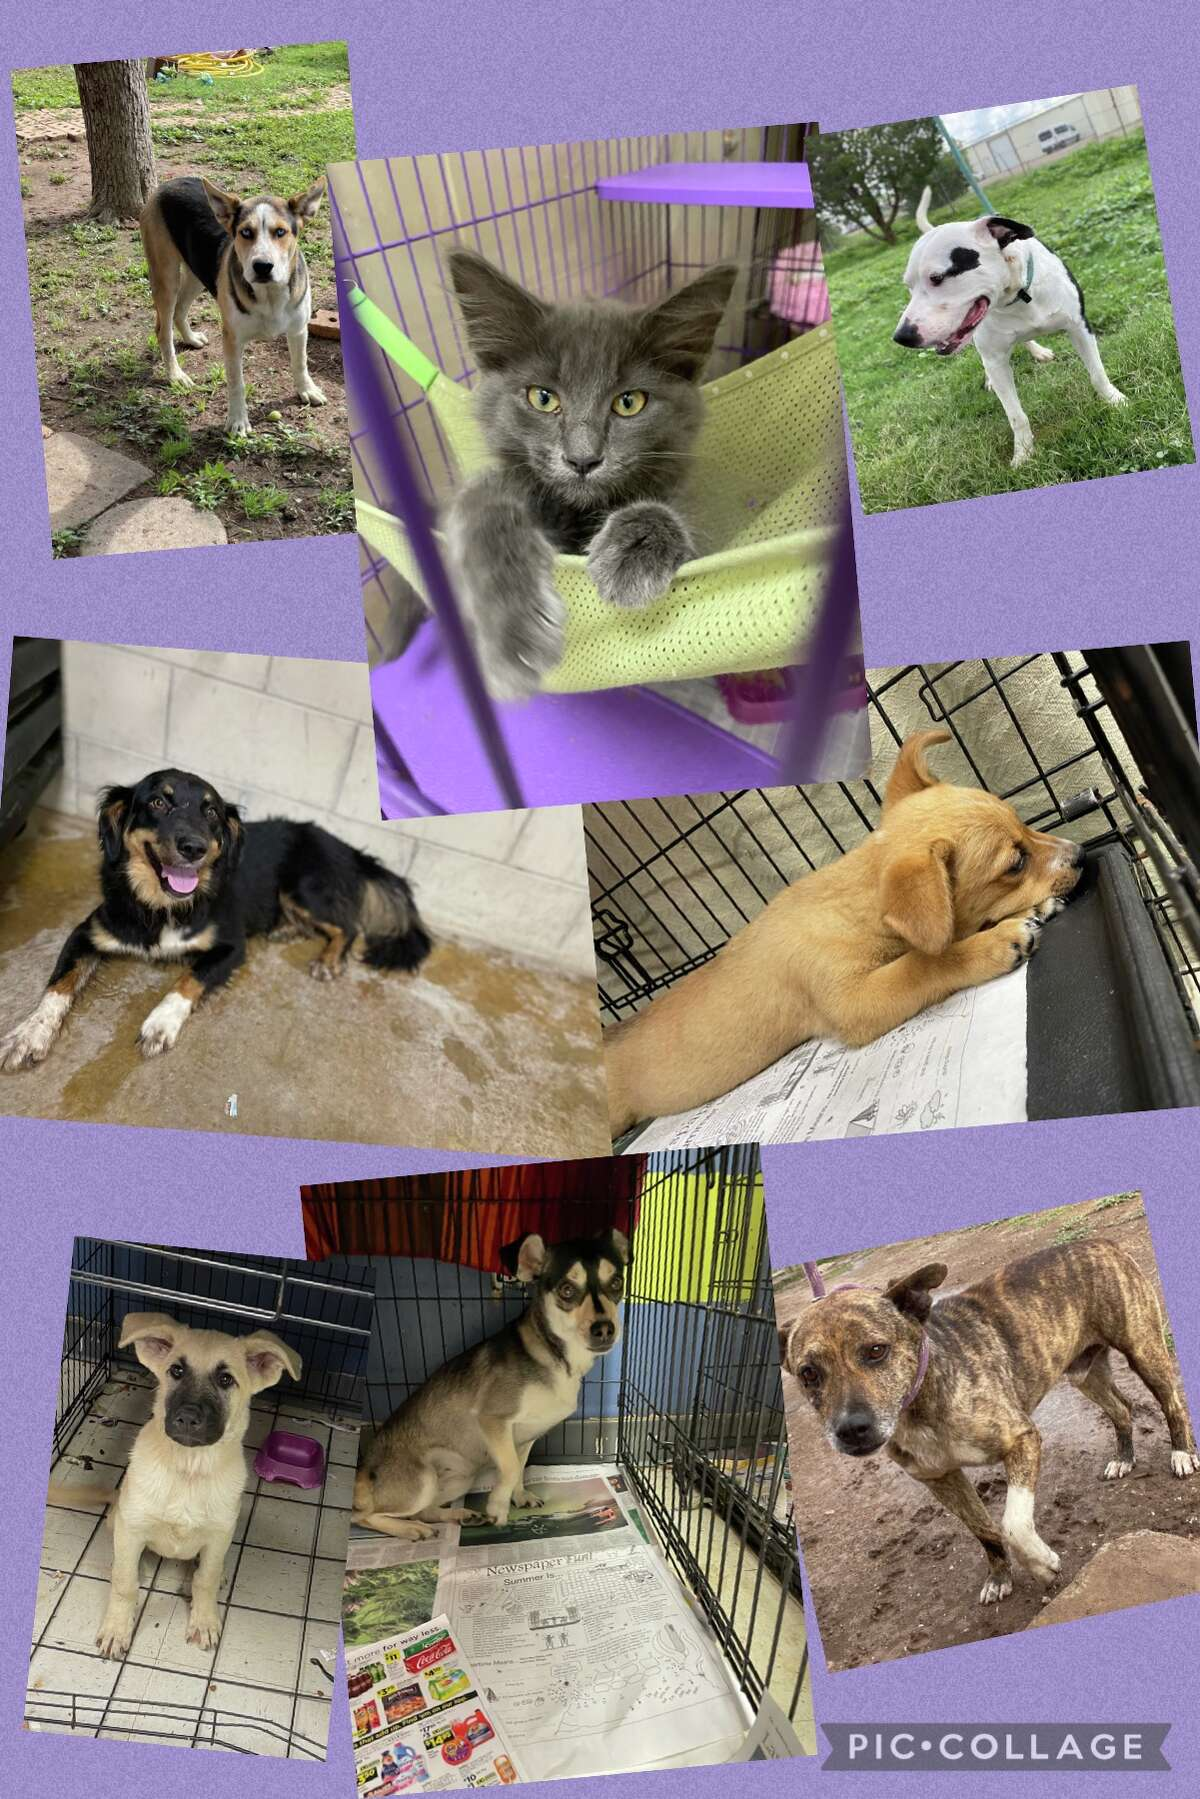 These are a few of the pets up for adoption at Paws Pet Adoption of Plainview